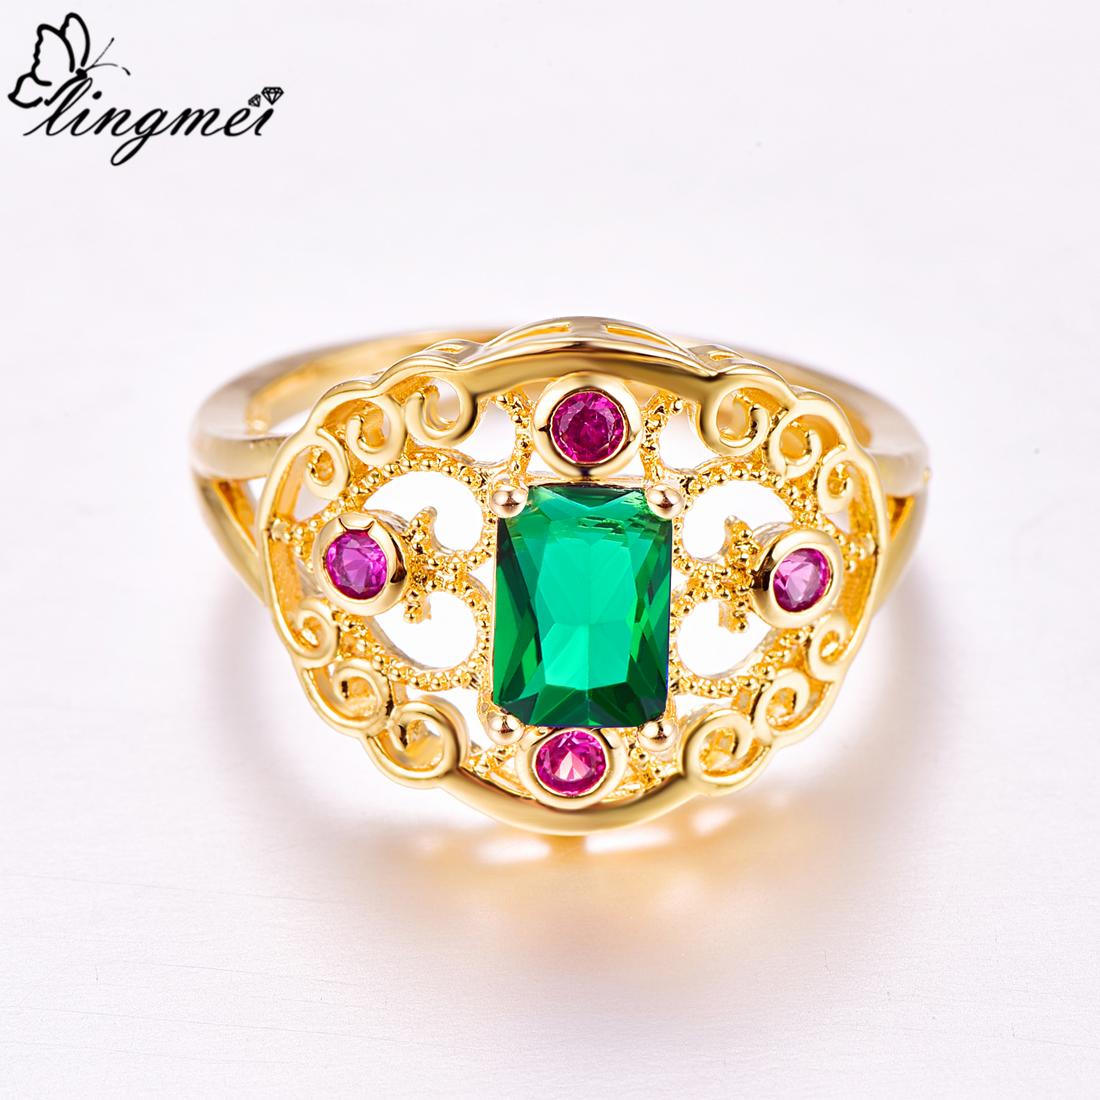 Lingmei Wedding Band Fashion Gorgeous Ring for Women Blue Green Zircon Silver Yellow Gold Color Ring Size 6 7 8 9 Christmas in Rings from Jewelry Accessories